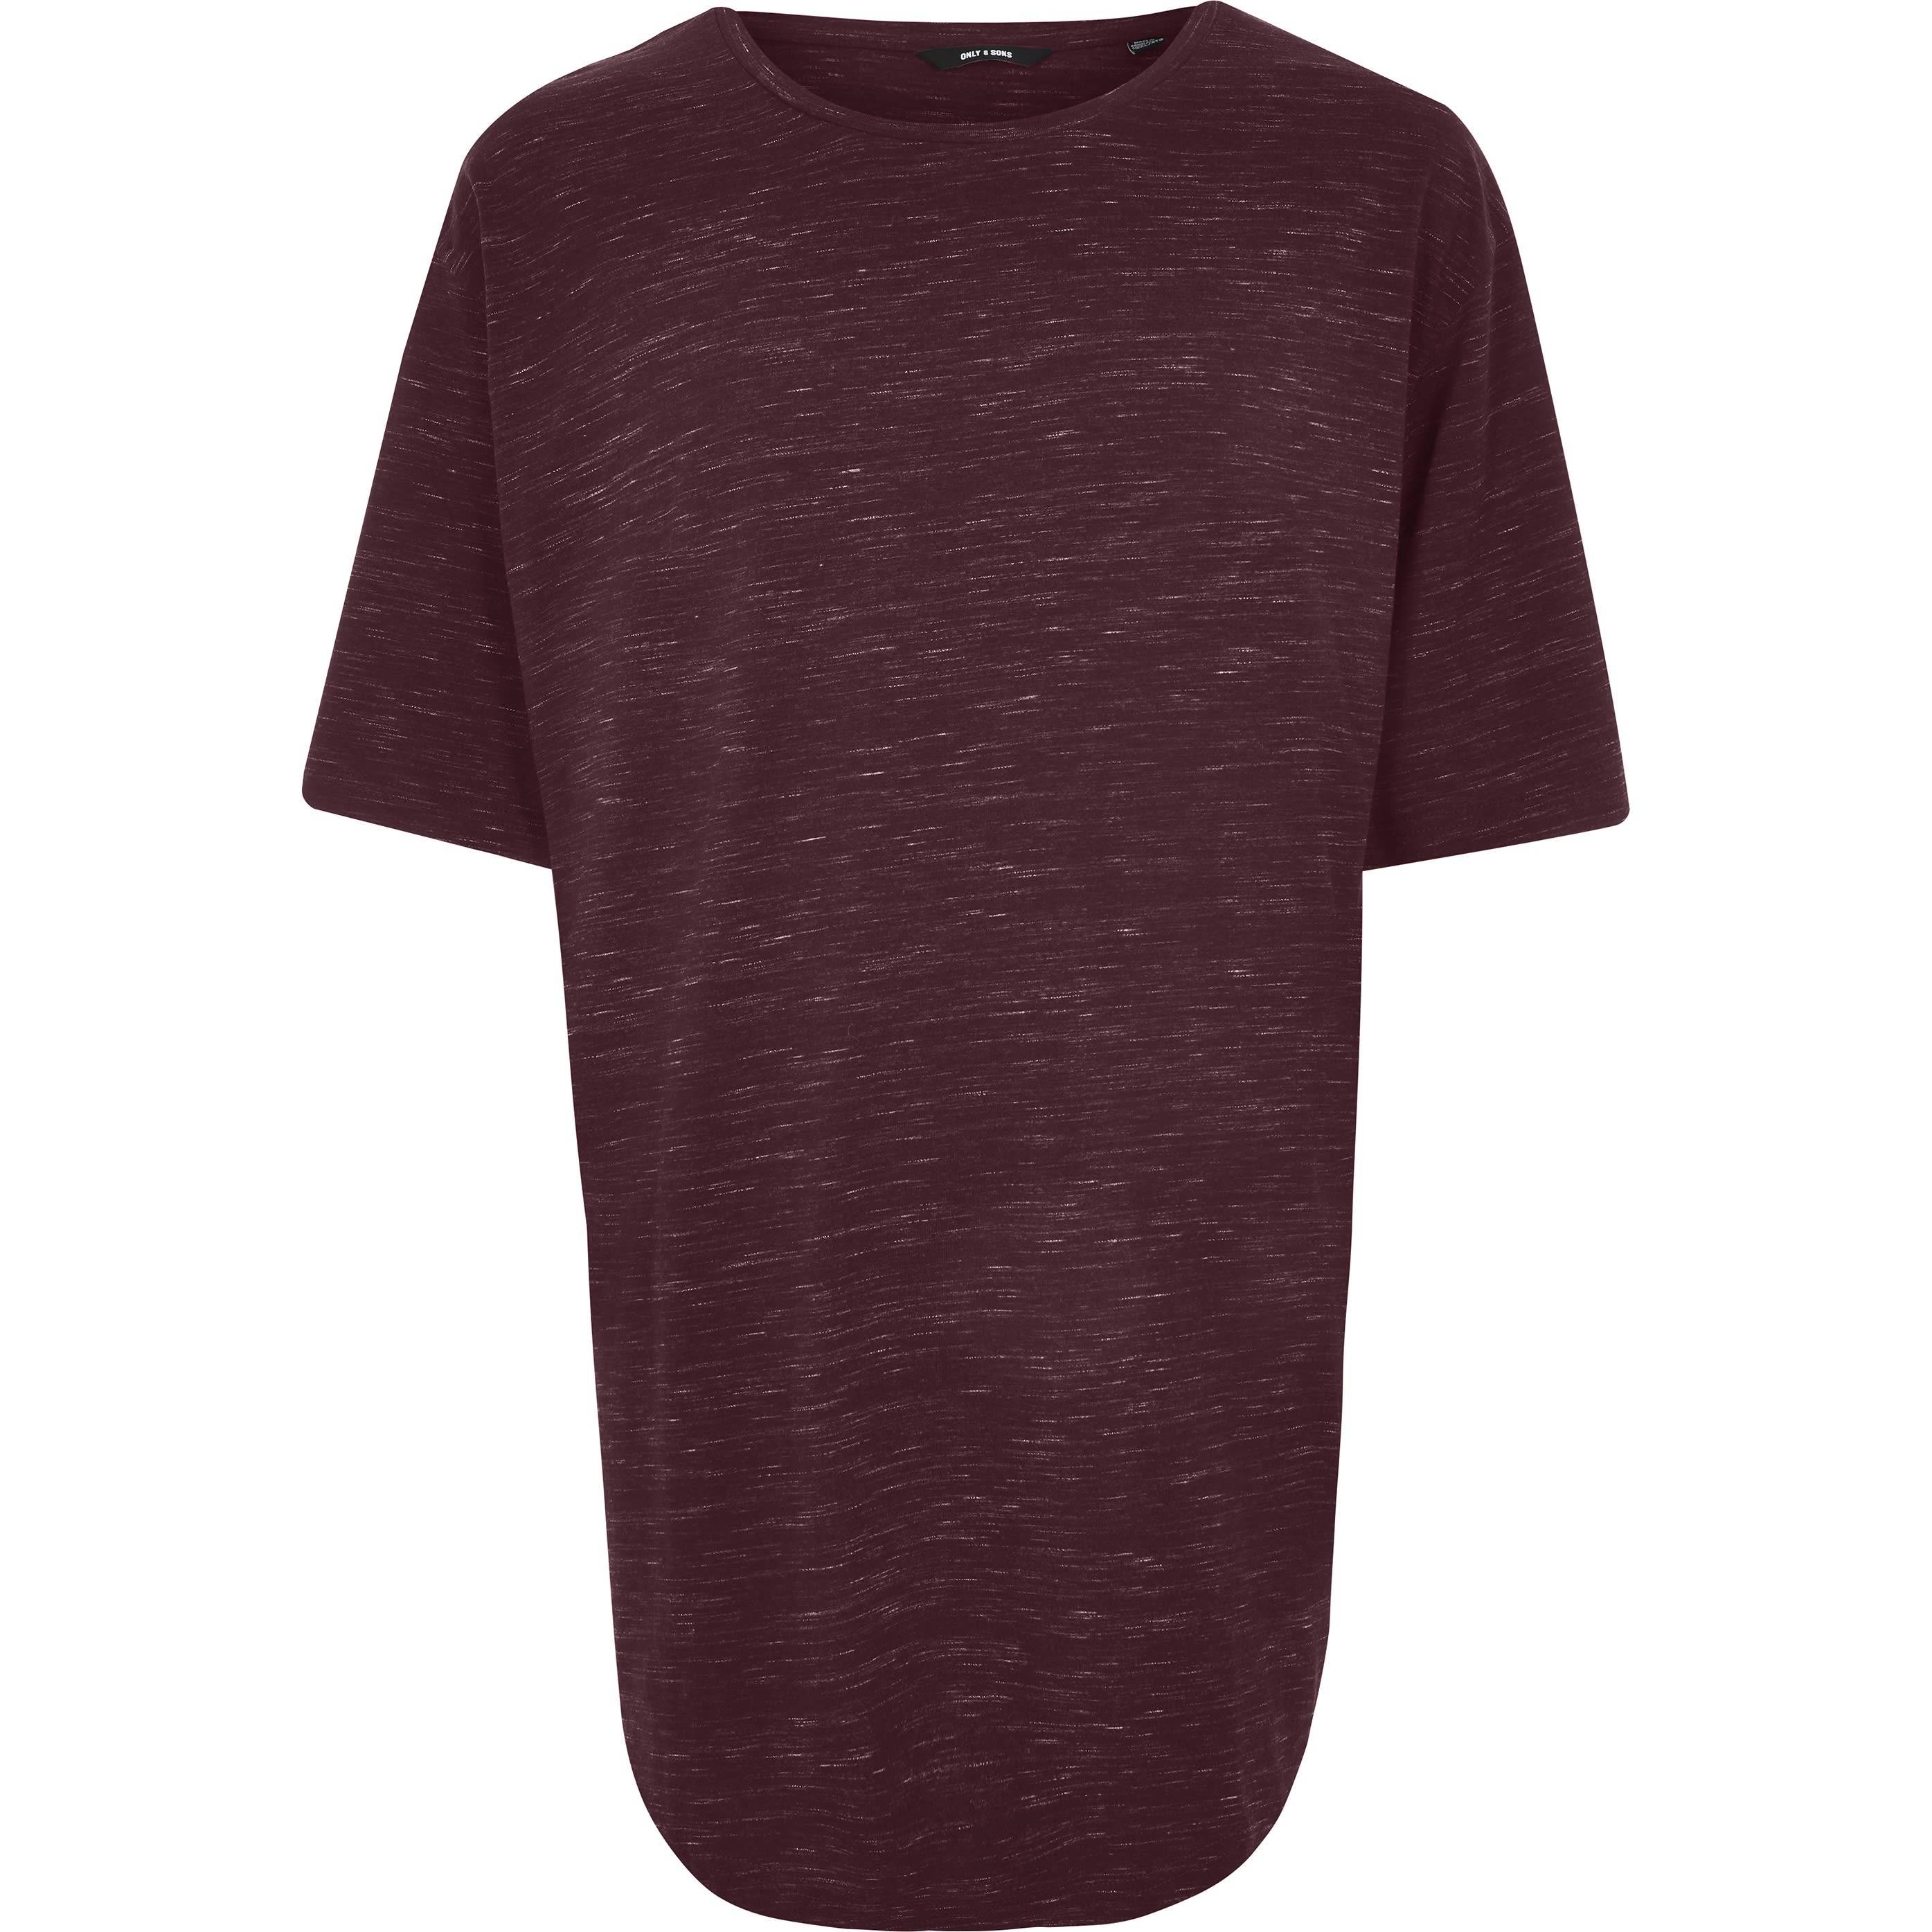 River Island Mens Only & Sons Big and Tall Red print T-shirt (XXXL)